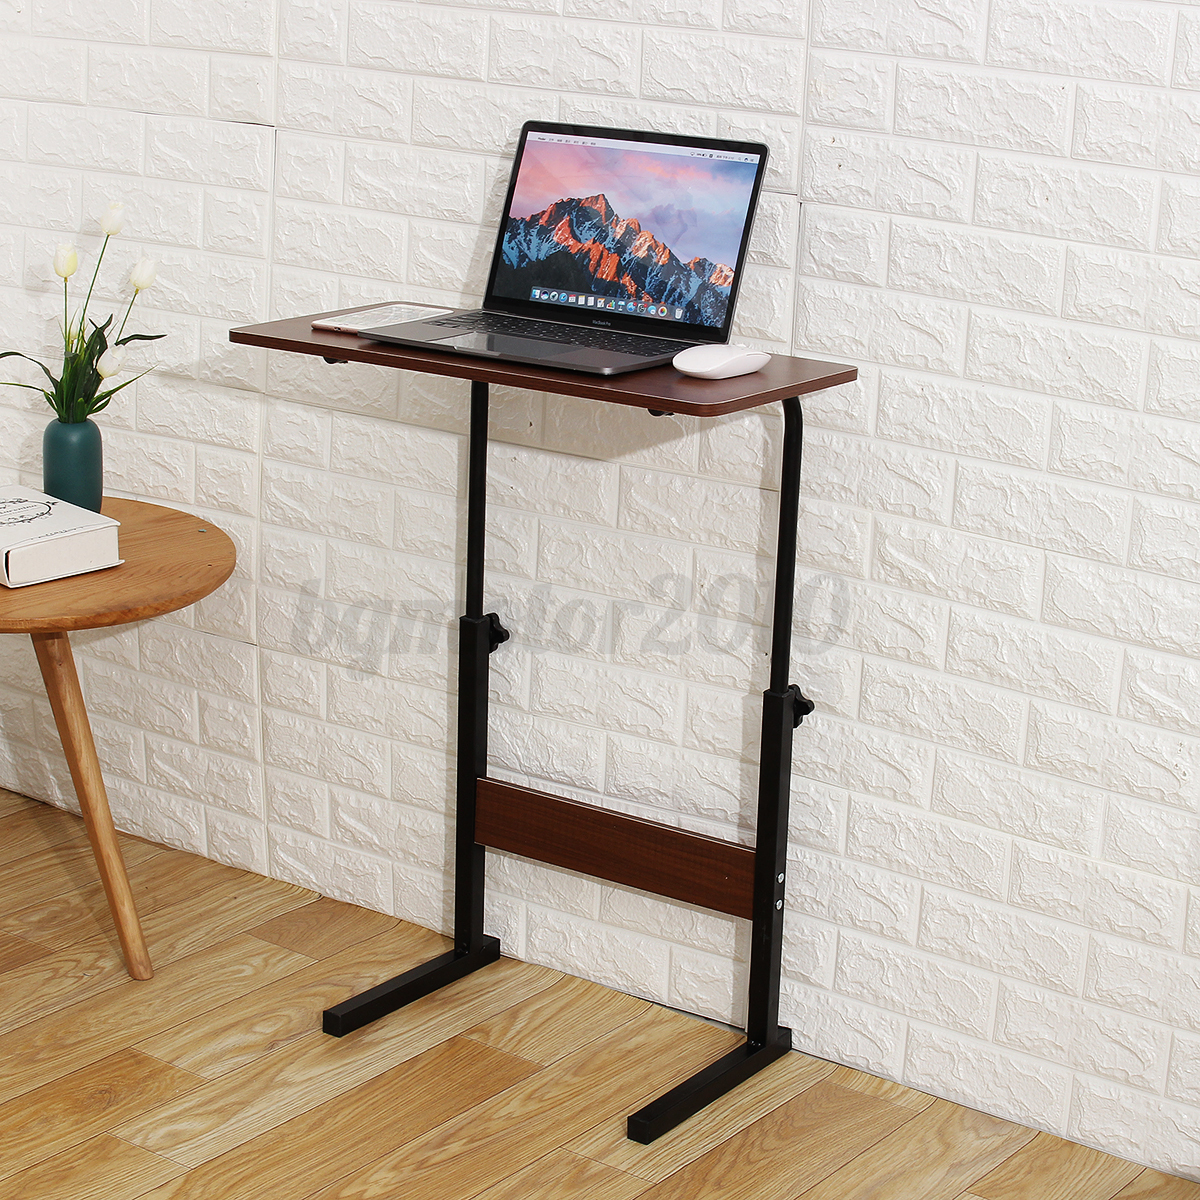 Adjustable Height PC Computer Rolling Desk Laptop Table Cart